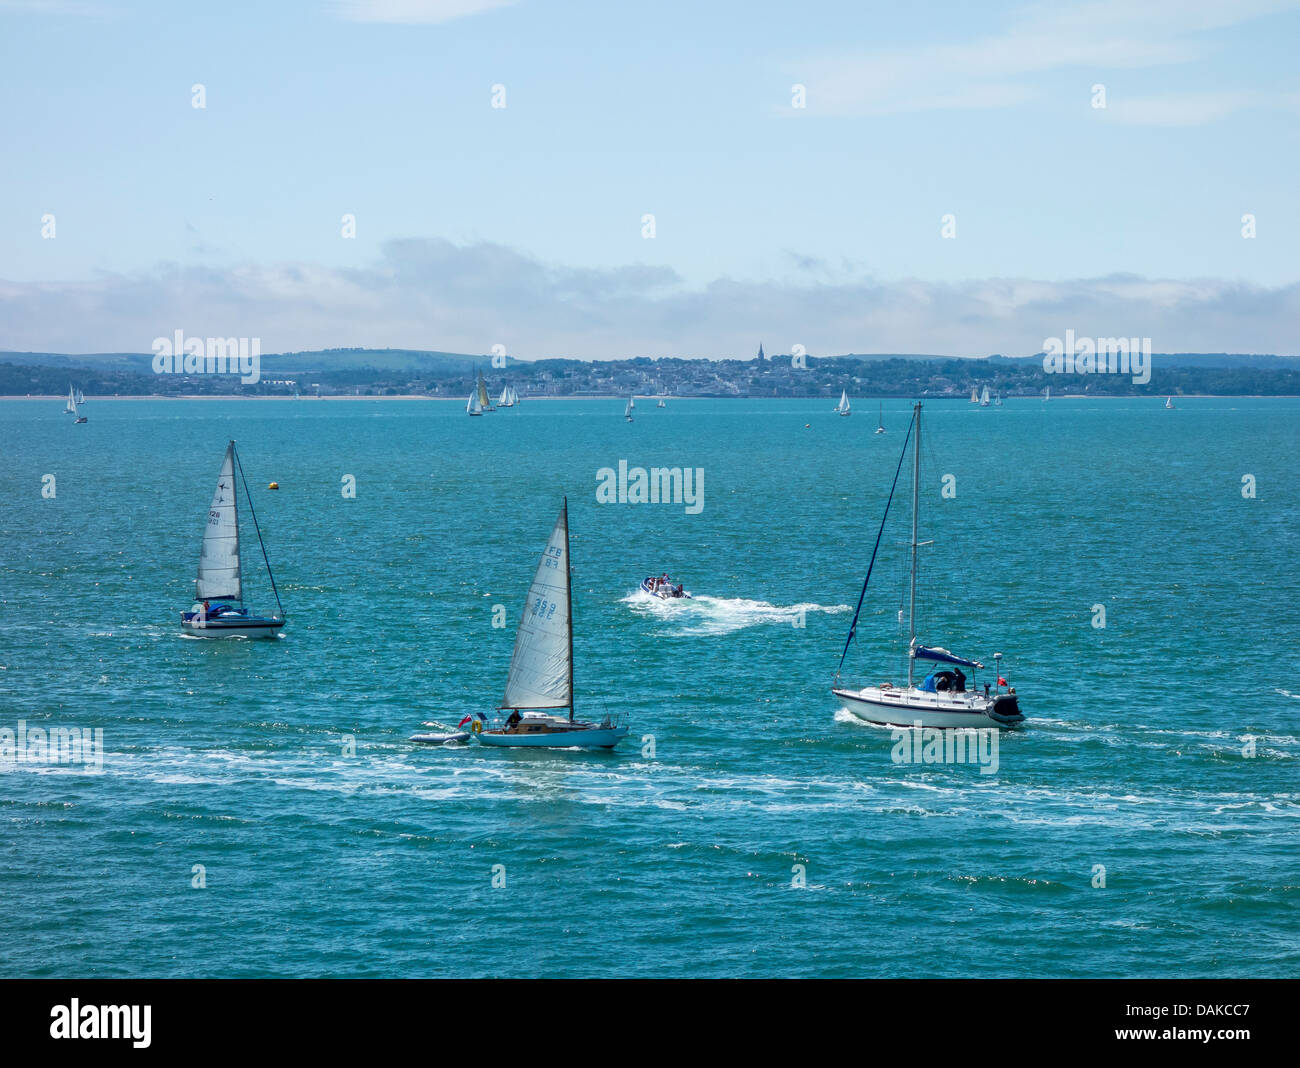 Boats on the Solent. Looking across to Ryde Isle of Wight - Stock Image